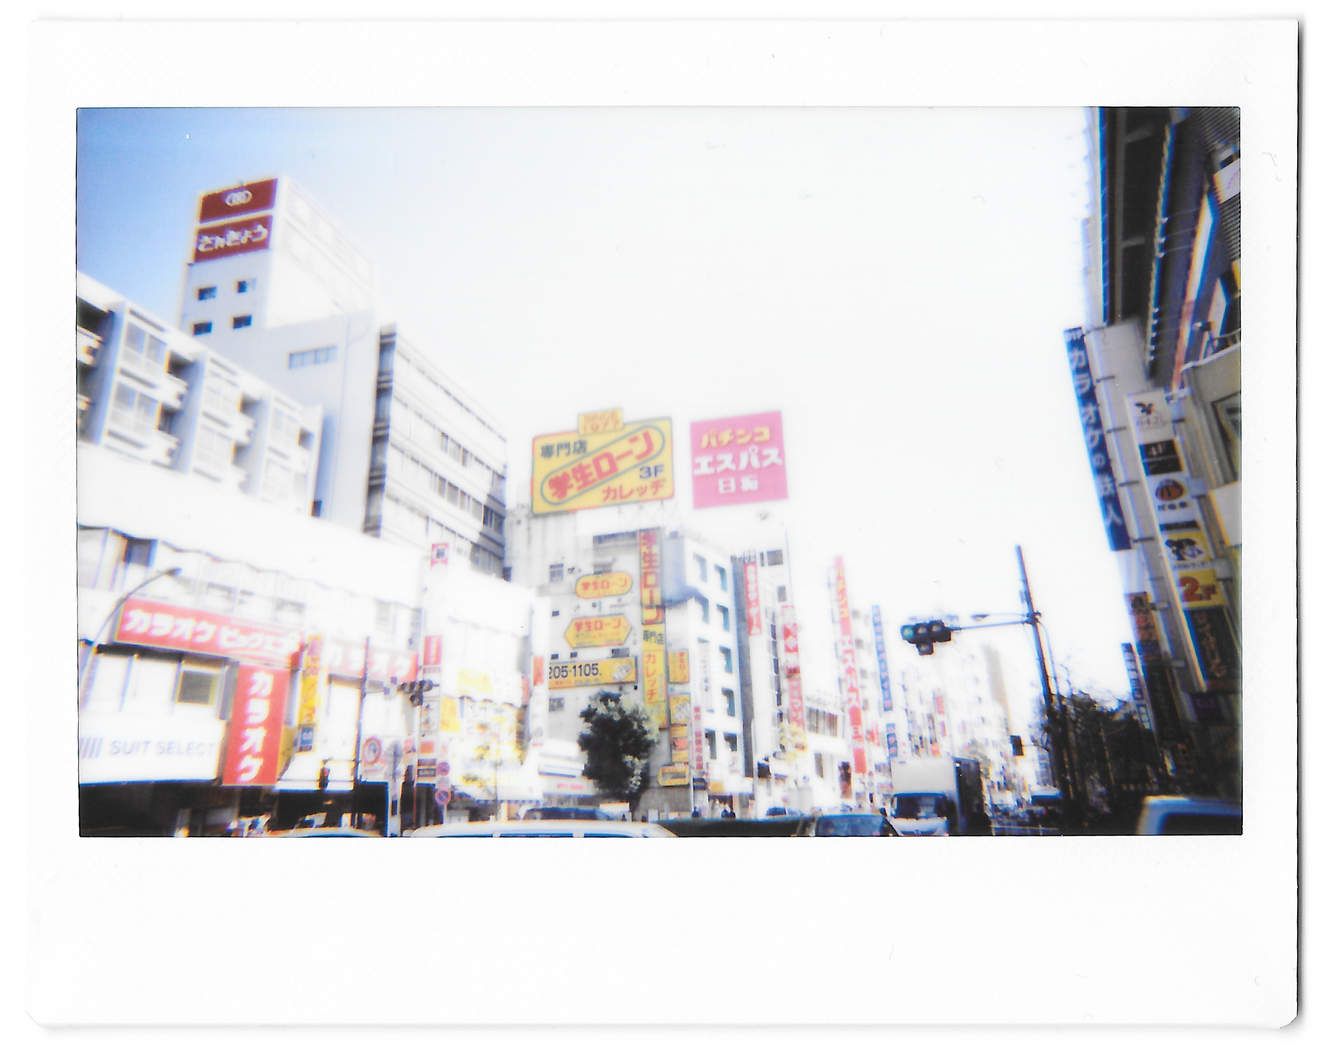 """Instant photo for Day 120 of """"A Year in an Instant"""" by Nuno Coelho Santos"""